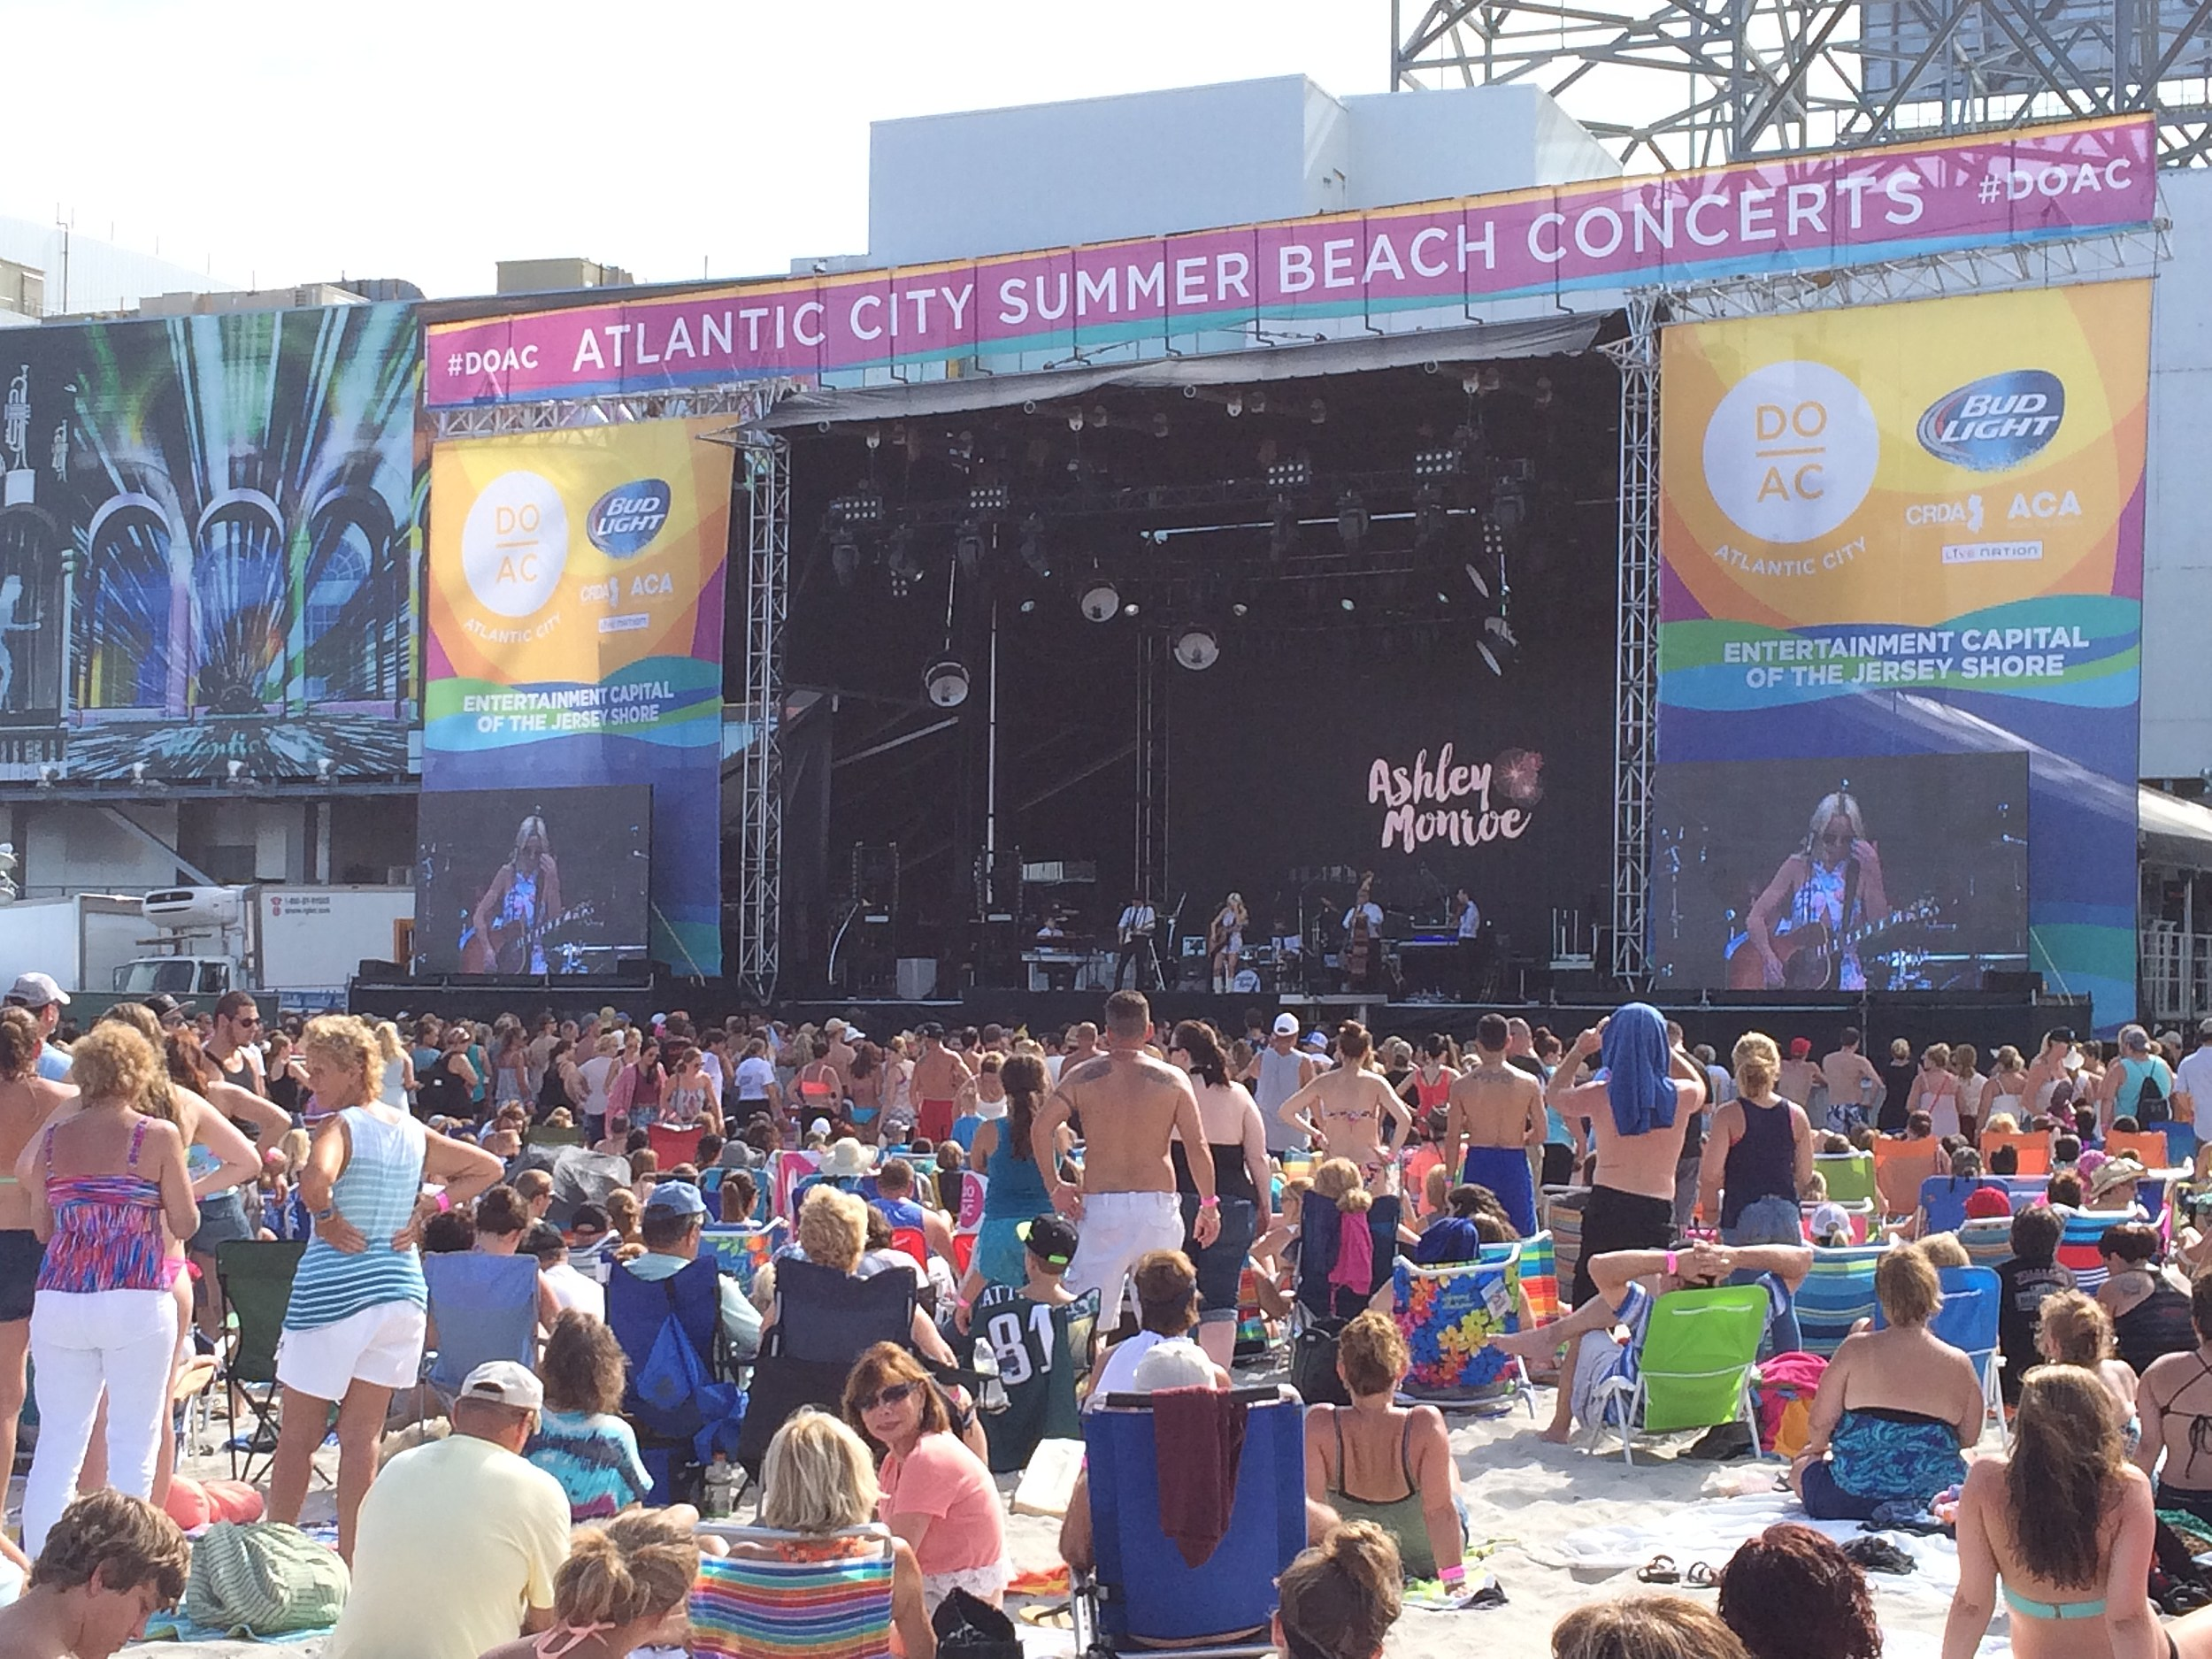 Parking Options Announced For Atlantic City Beach Concerts Events